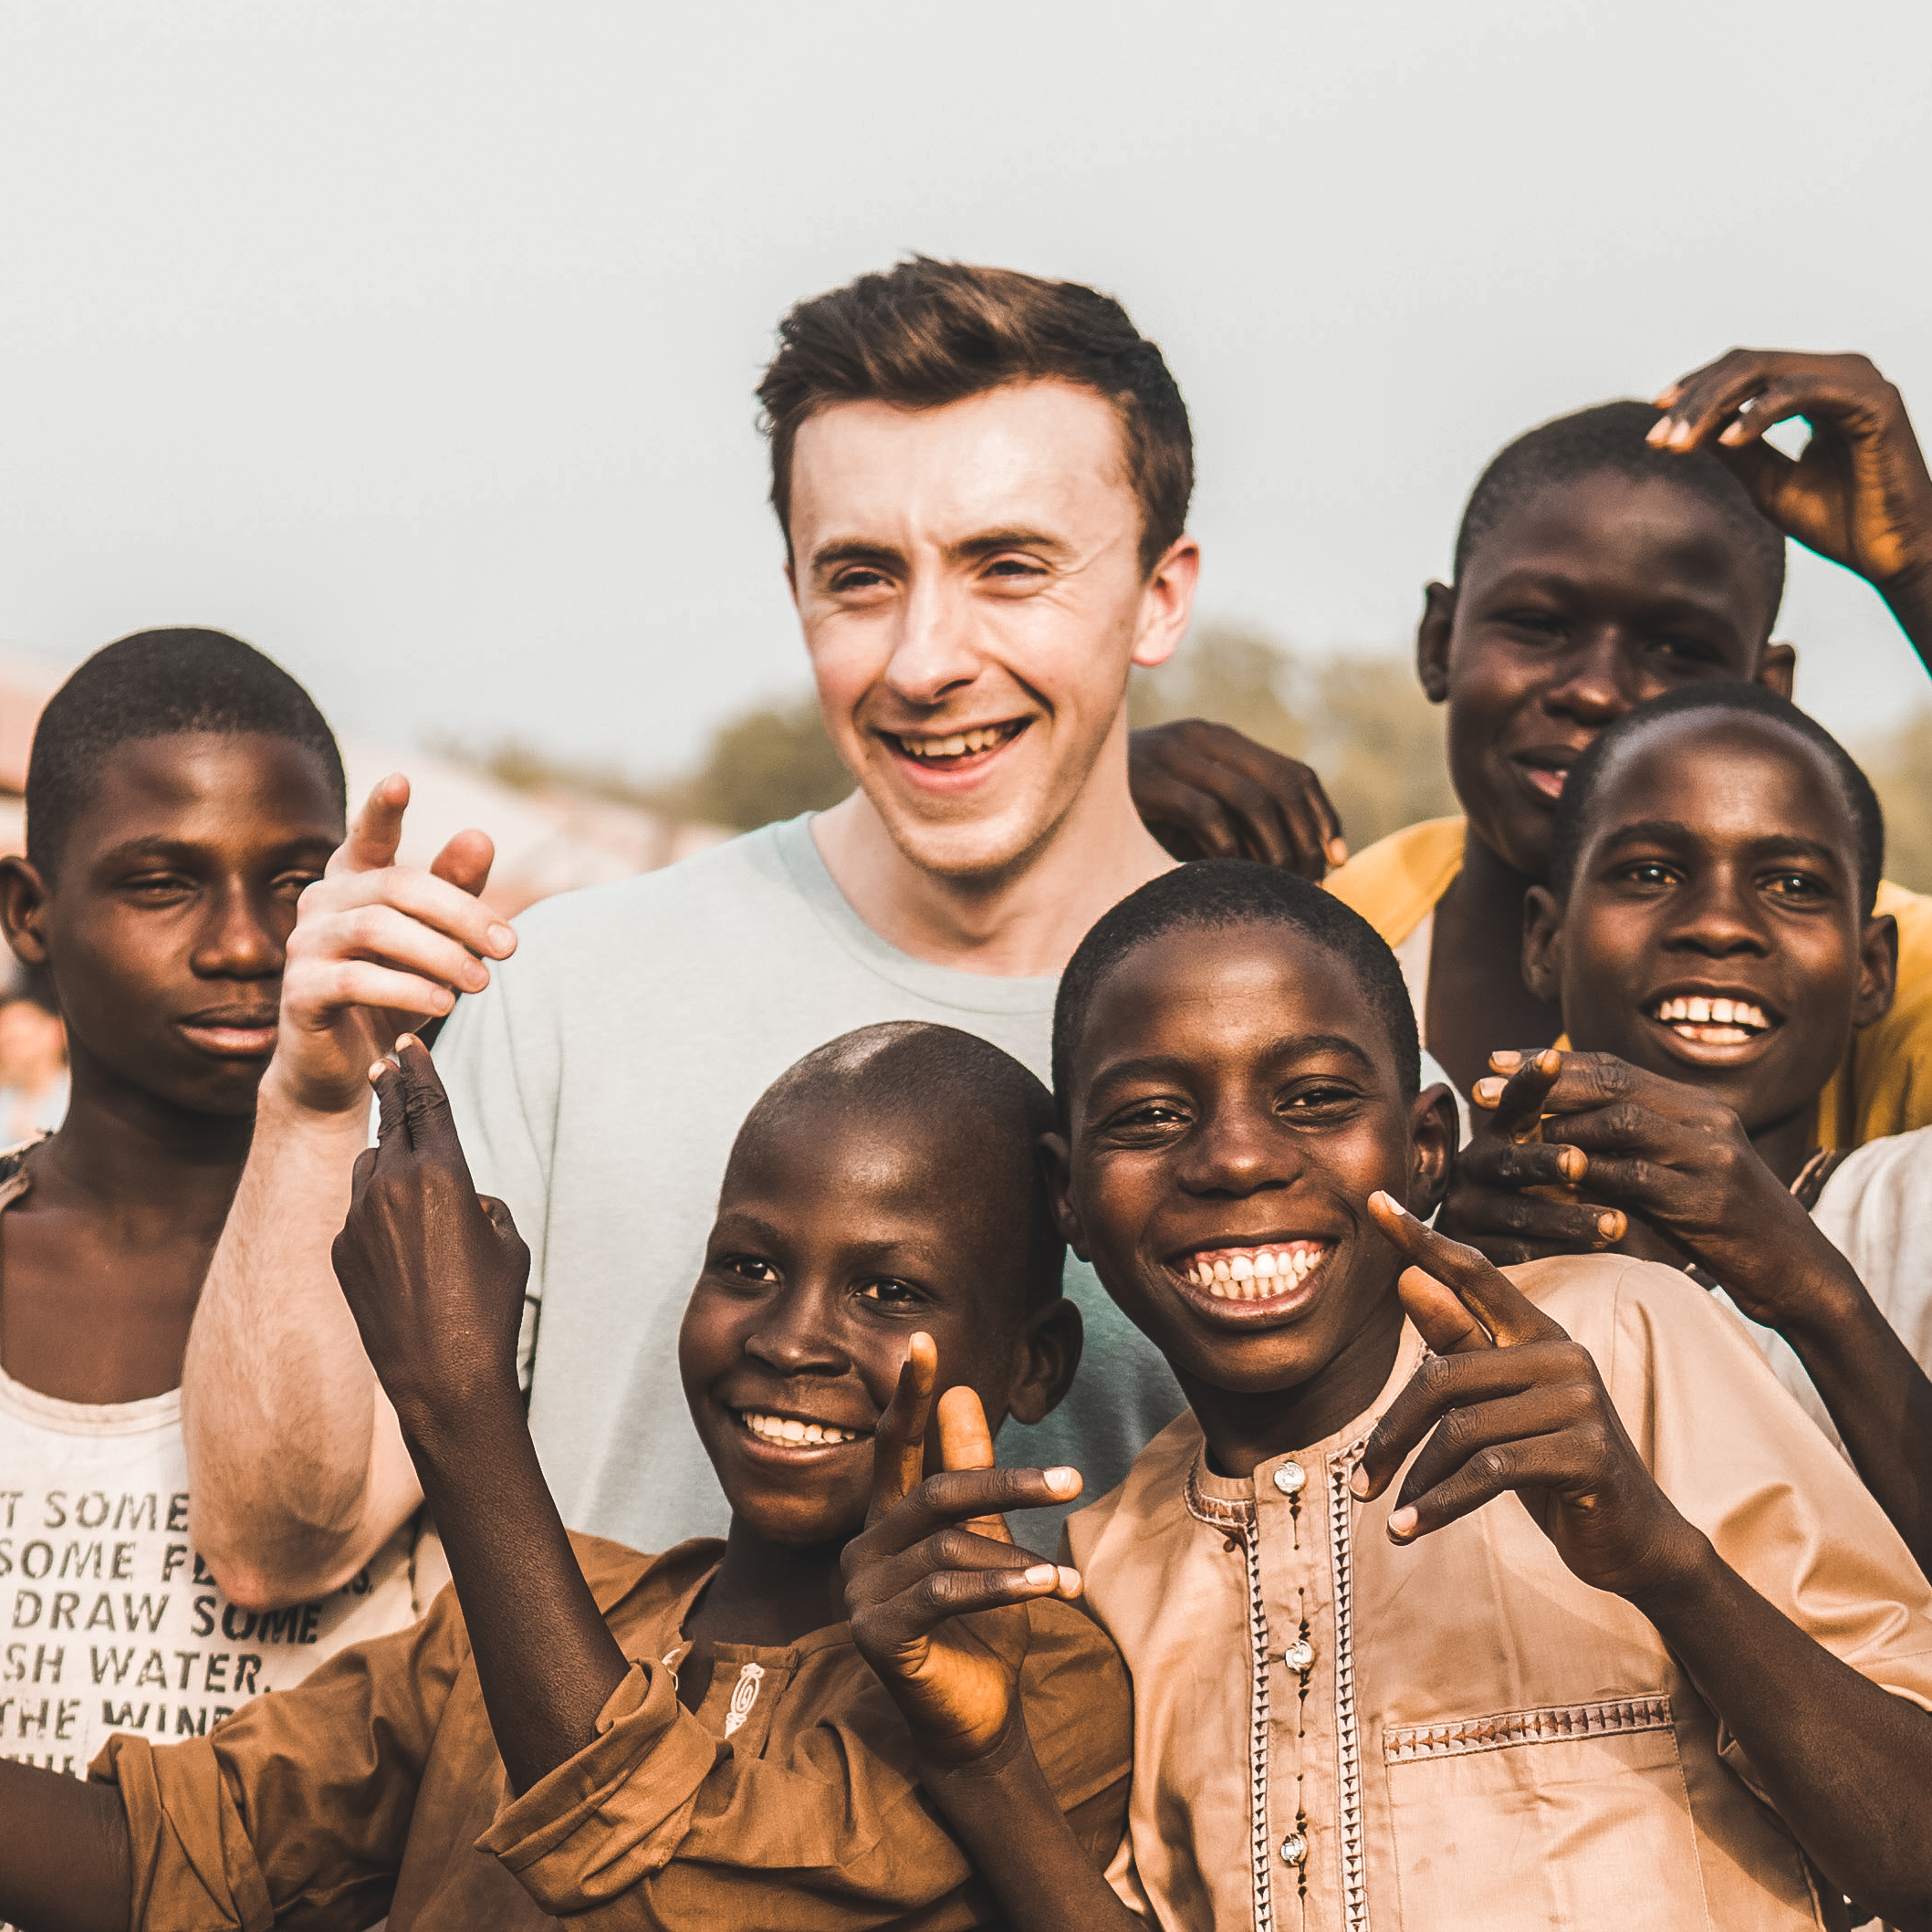 PAUL - I'm Paul and WellWater has given me the opportunity to see the needs of others in the world. We provide an impactful and exciting way to make a difference to people lives where it's needed most! Having lived in Koma, I can't wait to see how lives are going to change through everyone who generously gives their time and money to support this community. I am helping in the finance team I'm committed to seeing all money given to the charity achieving the greatest impact possible! Cool fact about me is that in my spare time I play Ice hockey and one day I would love to show the kids of Koma how great this sport is!